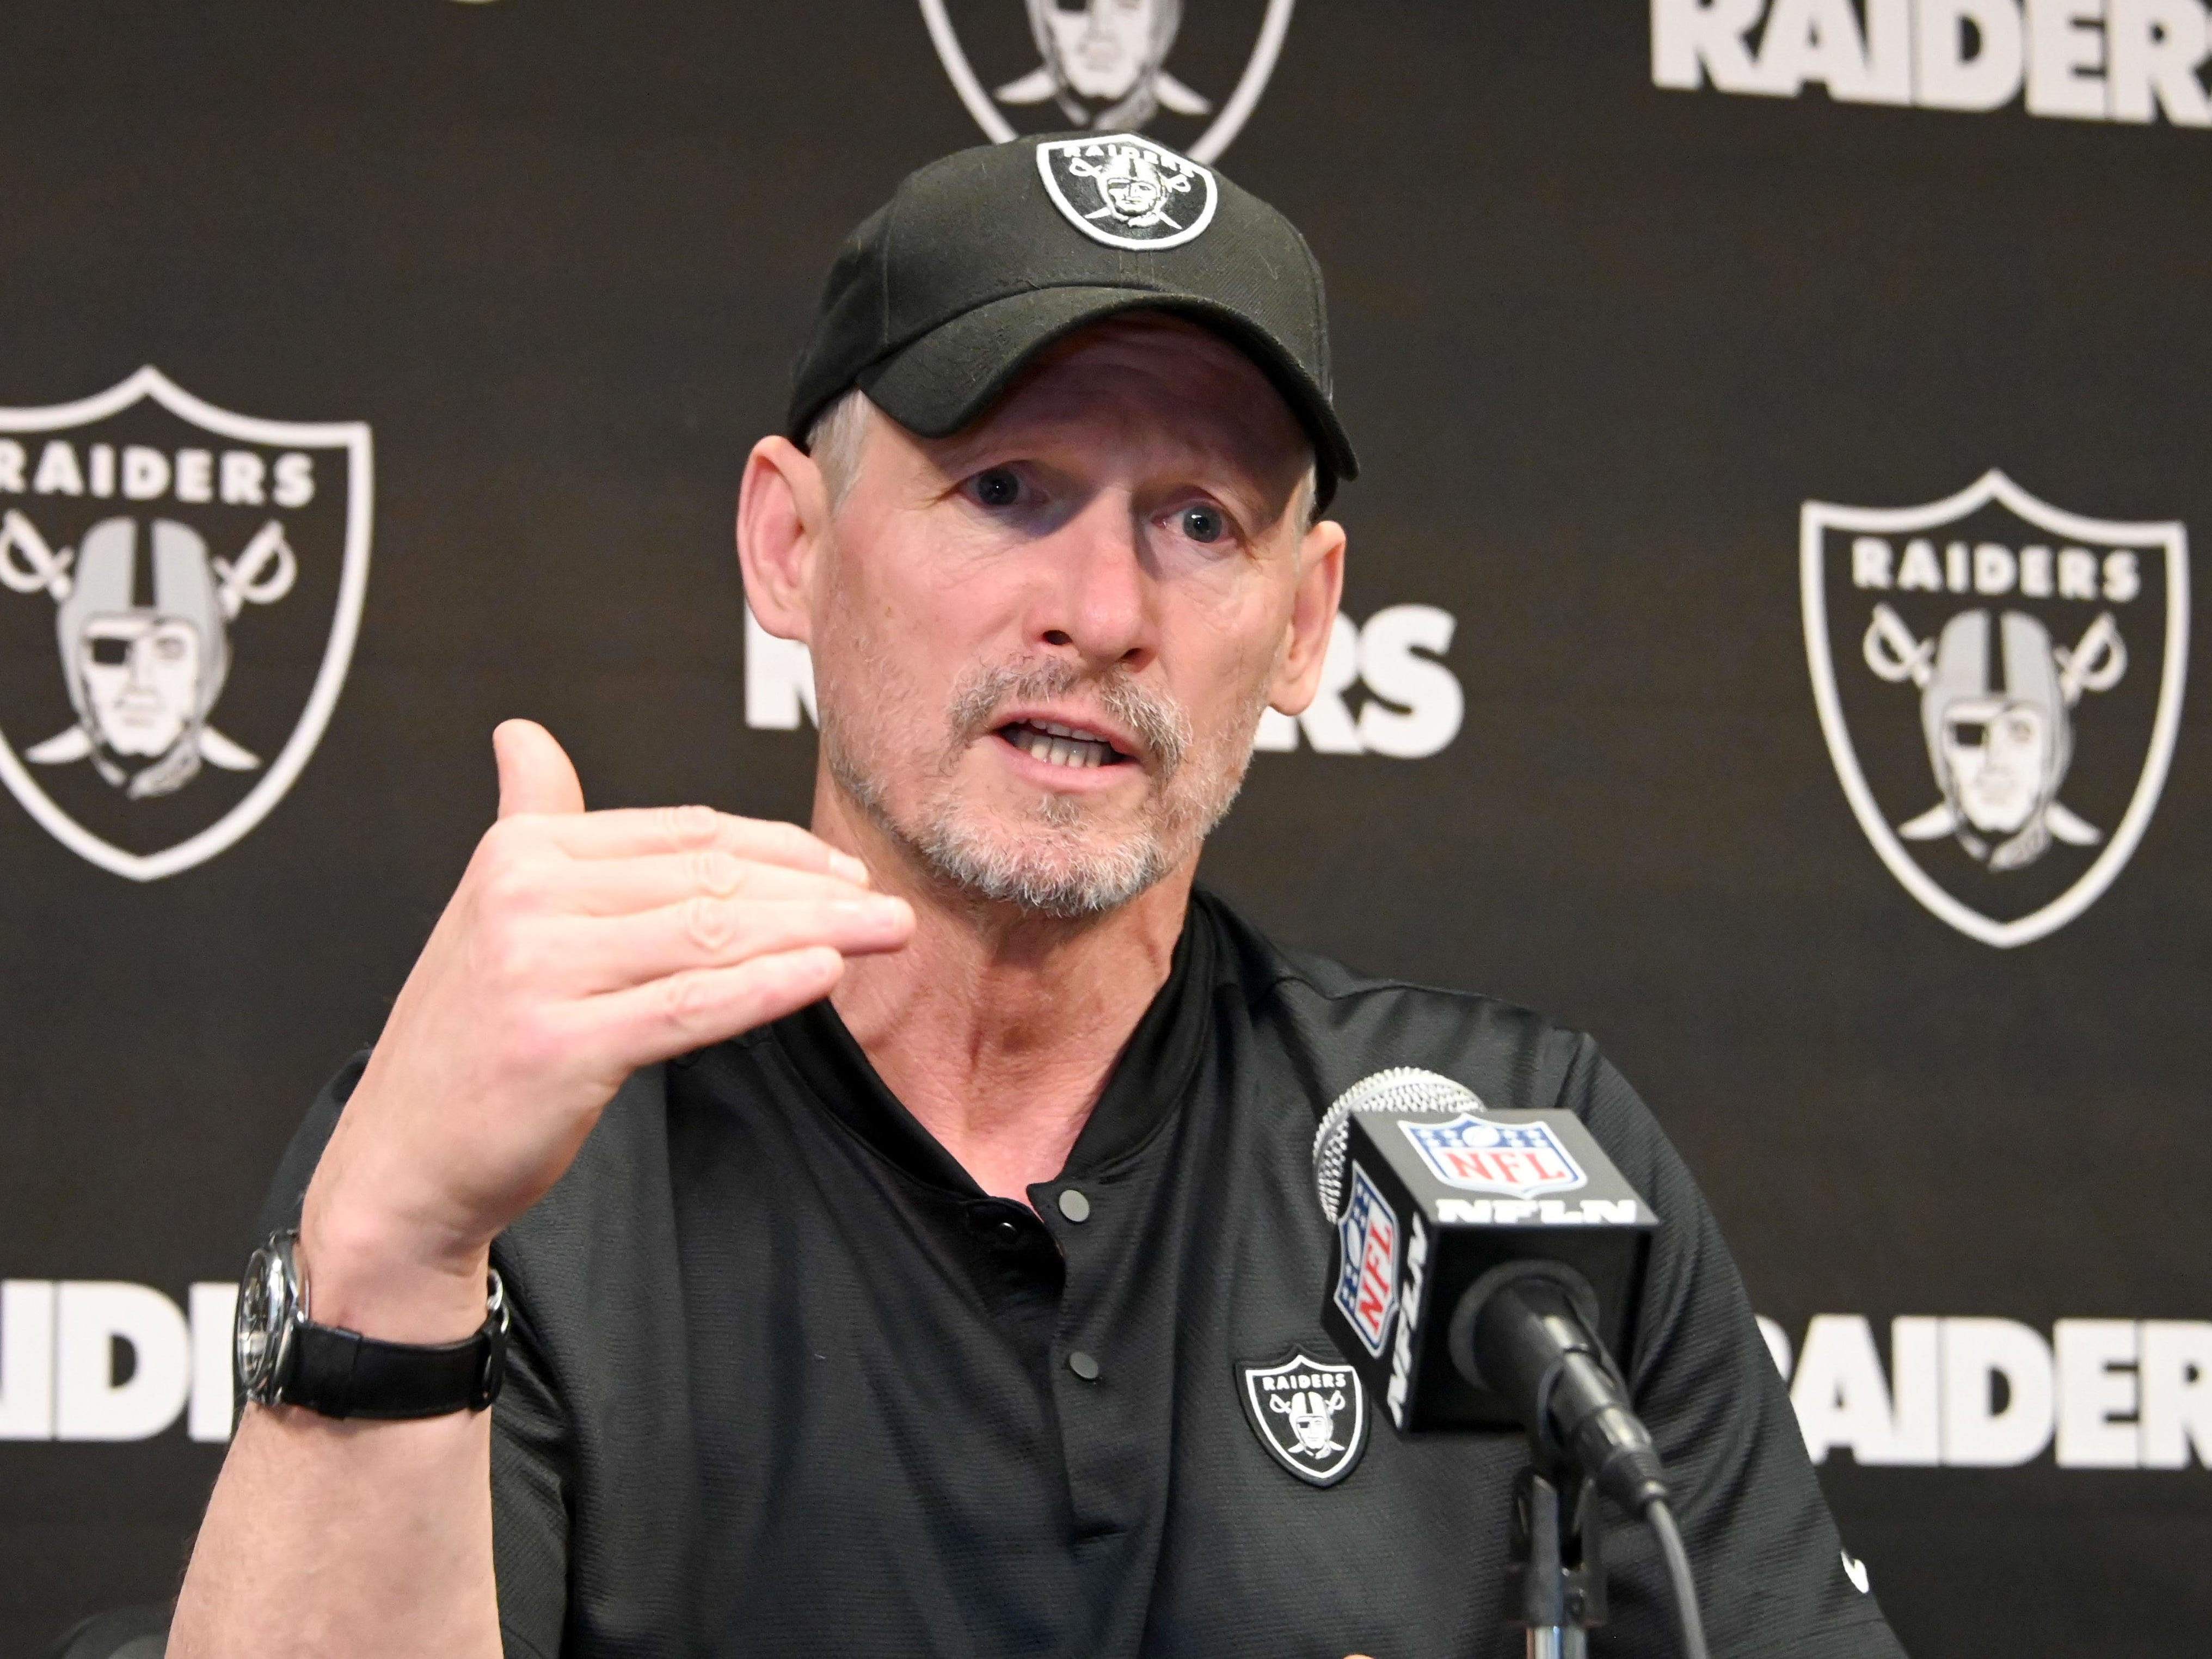 22. Raiders (23): GM Mike Mayock and Jon Gruden have wasted little time upgrading roster. Now it remains to be seen how well all these new parts mesh.